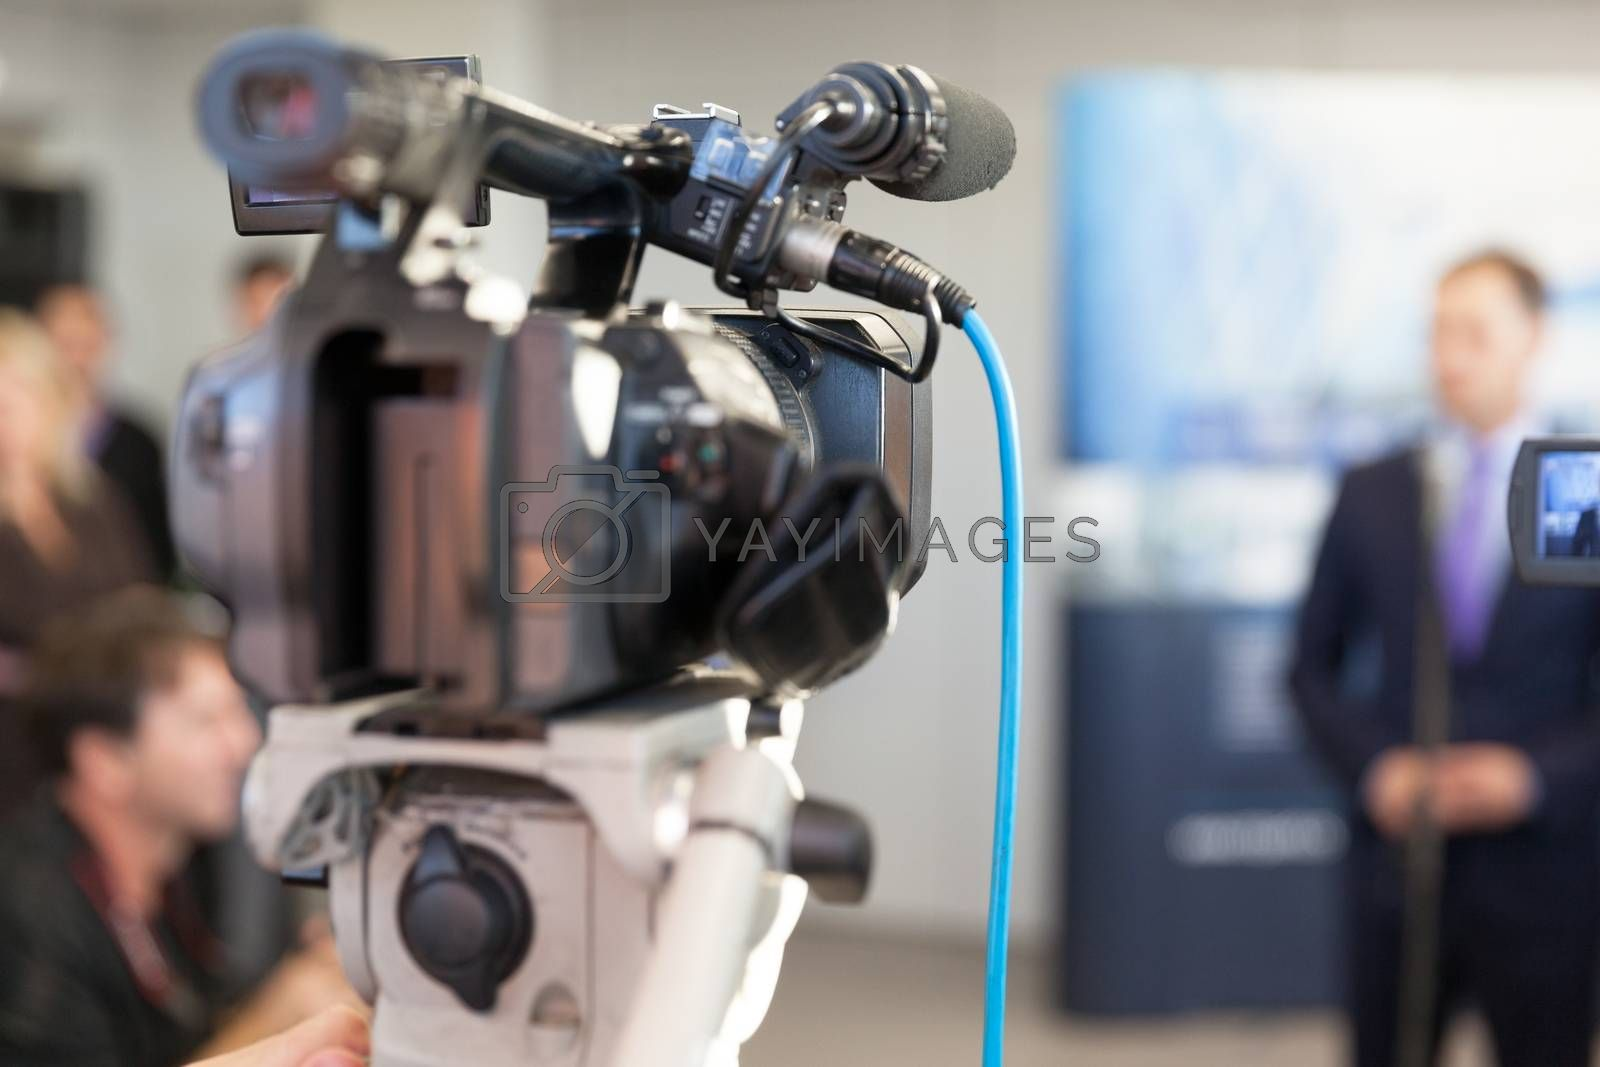 Video camera in focus, blurred spokesman in background. Corporate news conference.